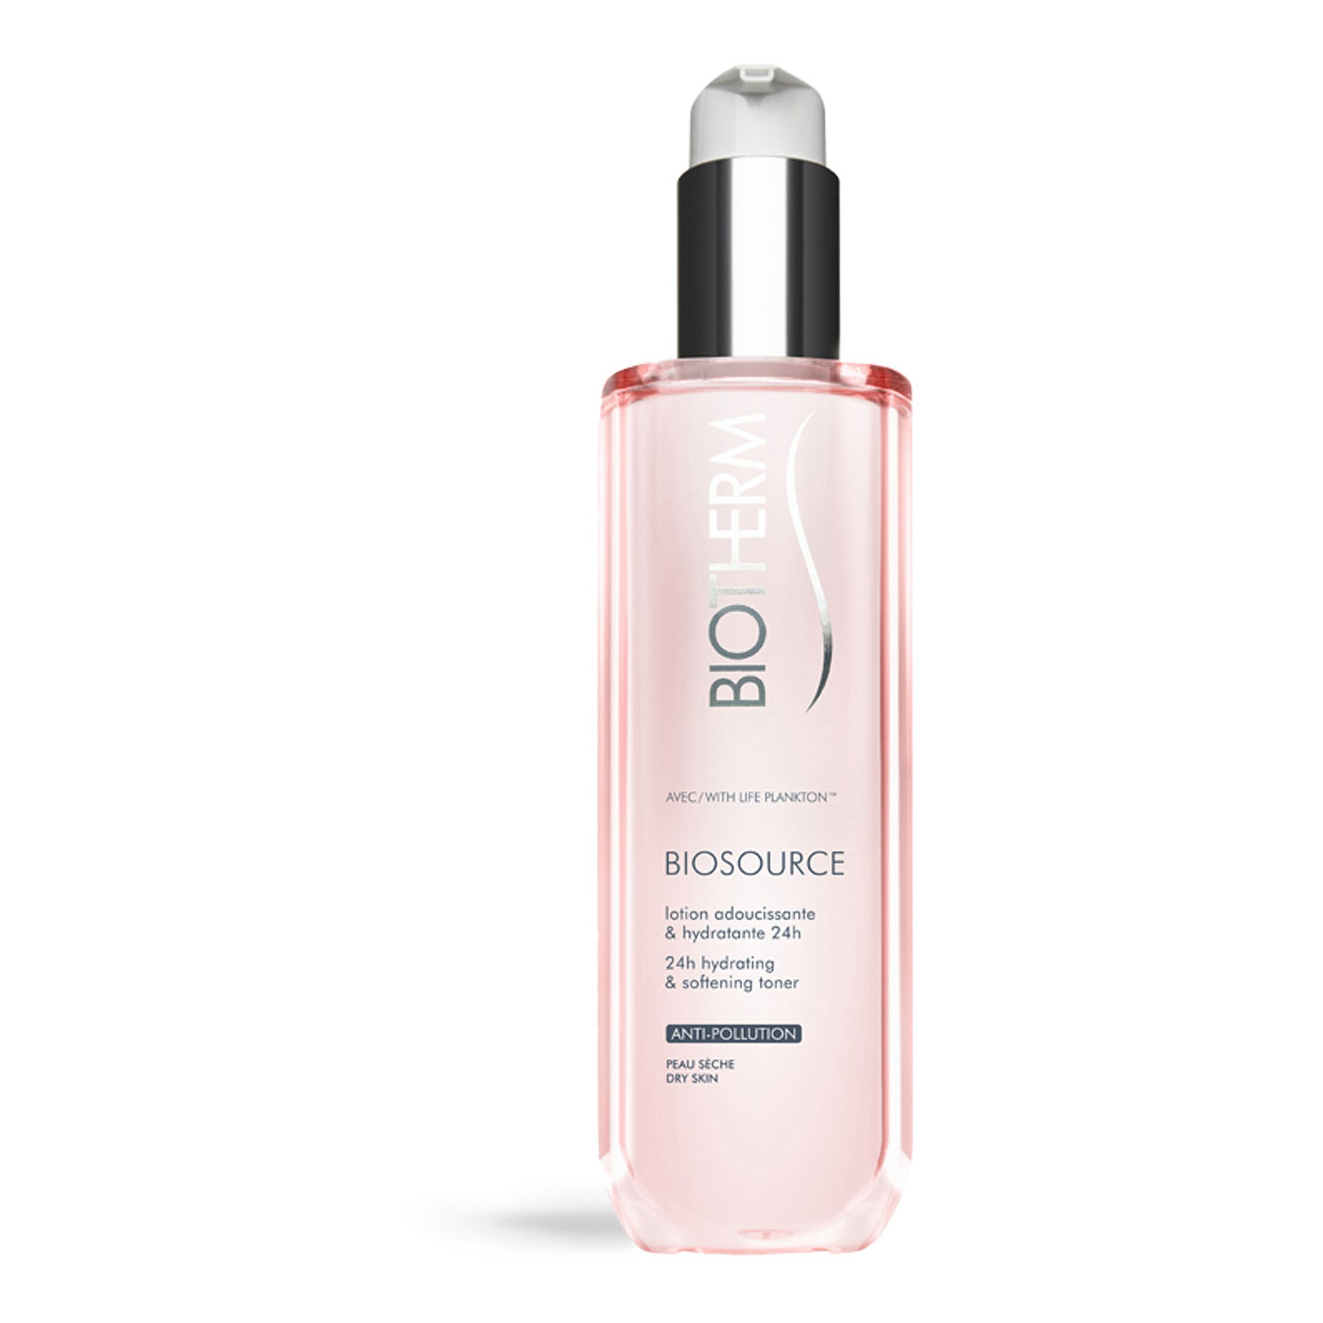 Biosource. BIOTHERM Hydrating & Softening Toner 24h 200ml